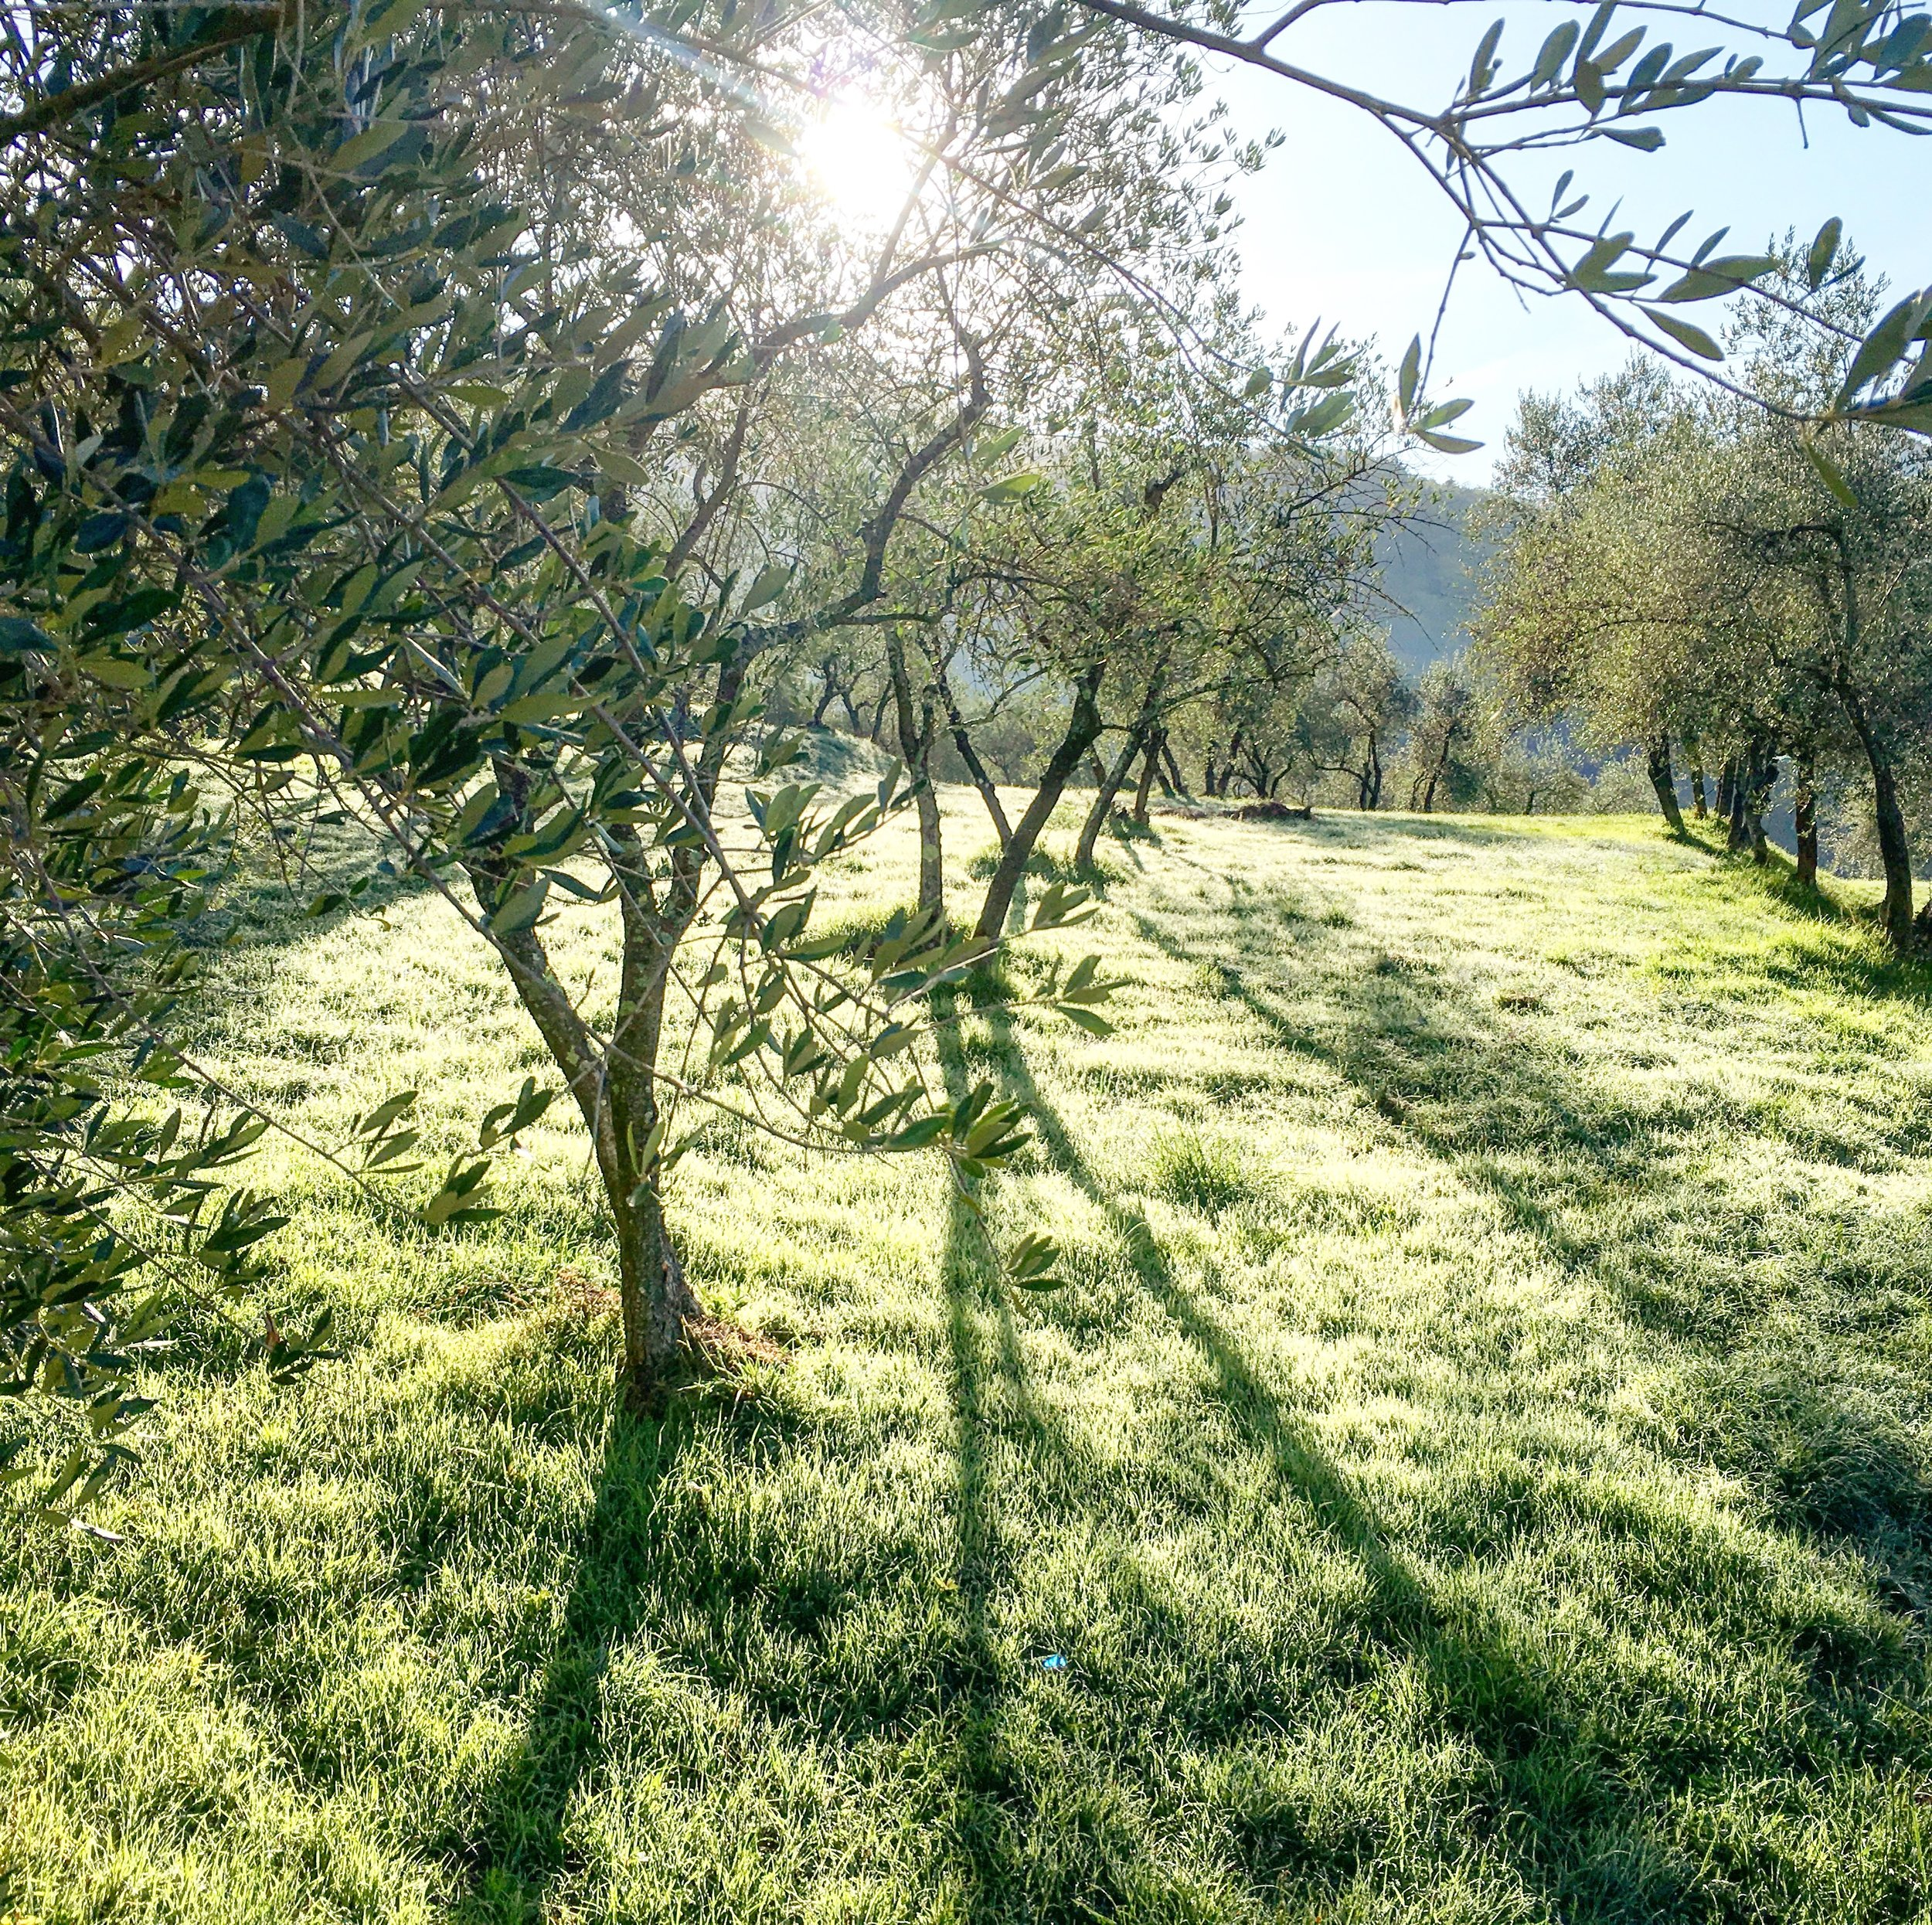 Early morning in the olive groves about Codiponte, Tuscany…